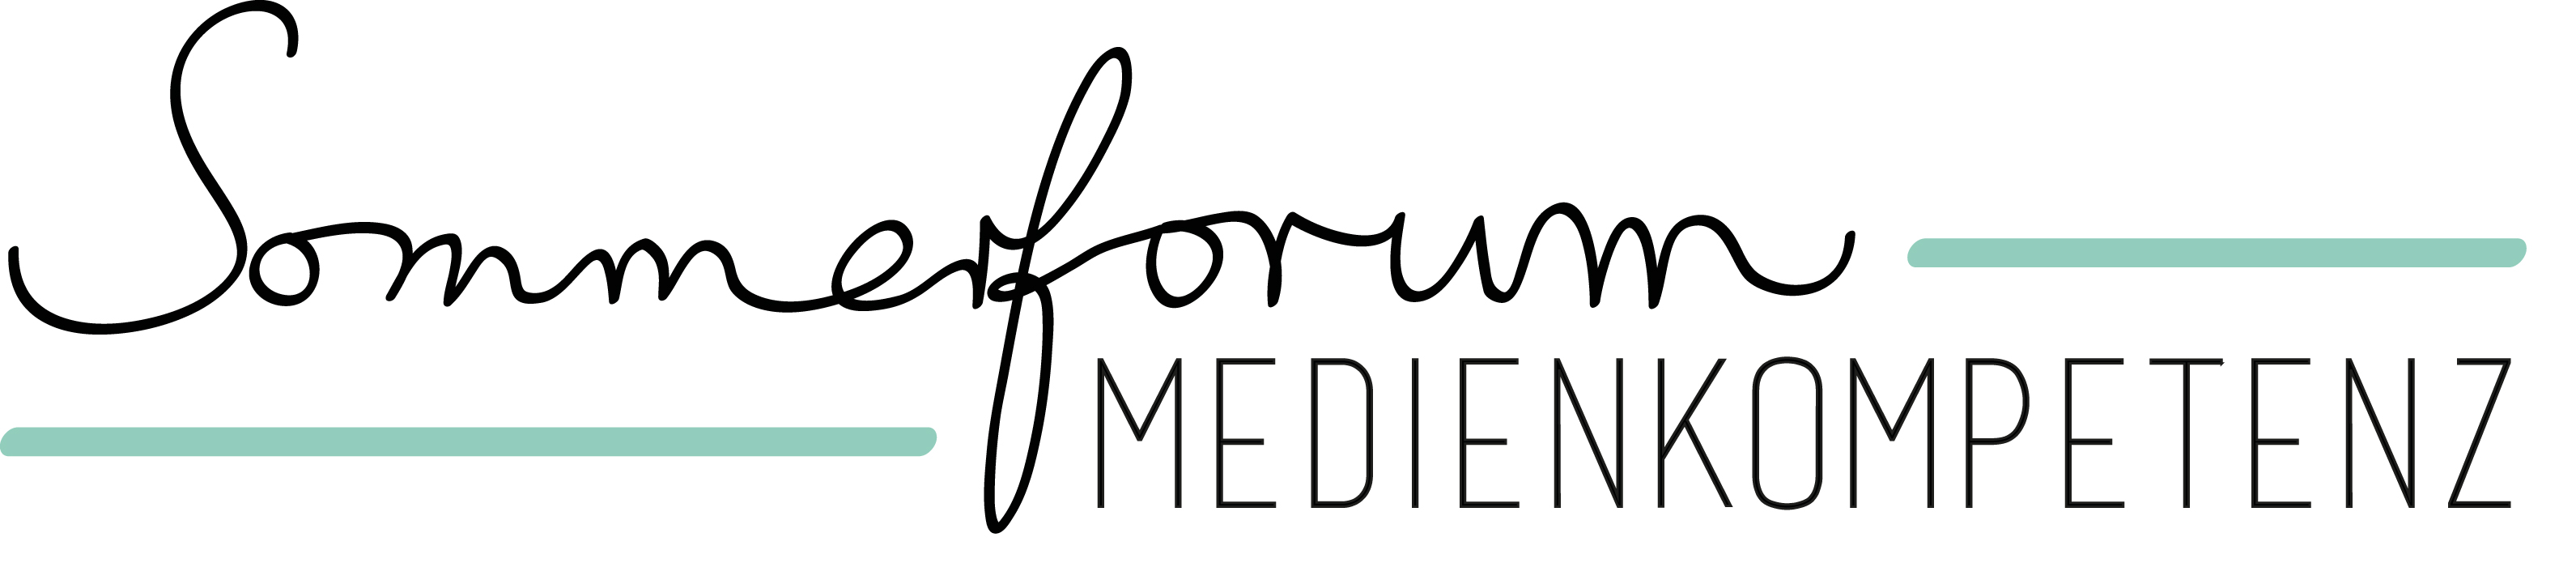 Sommerforum-Medienkompetenz